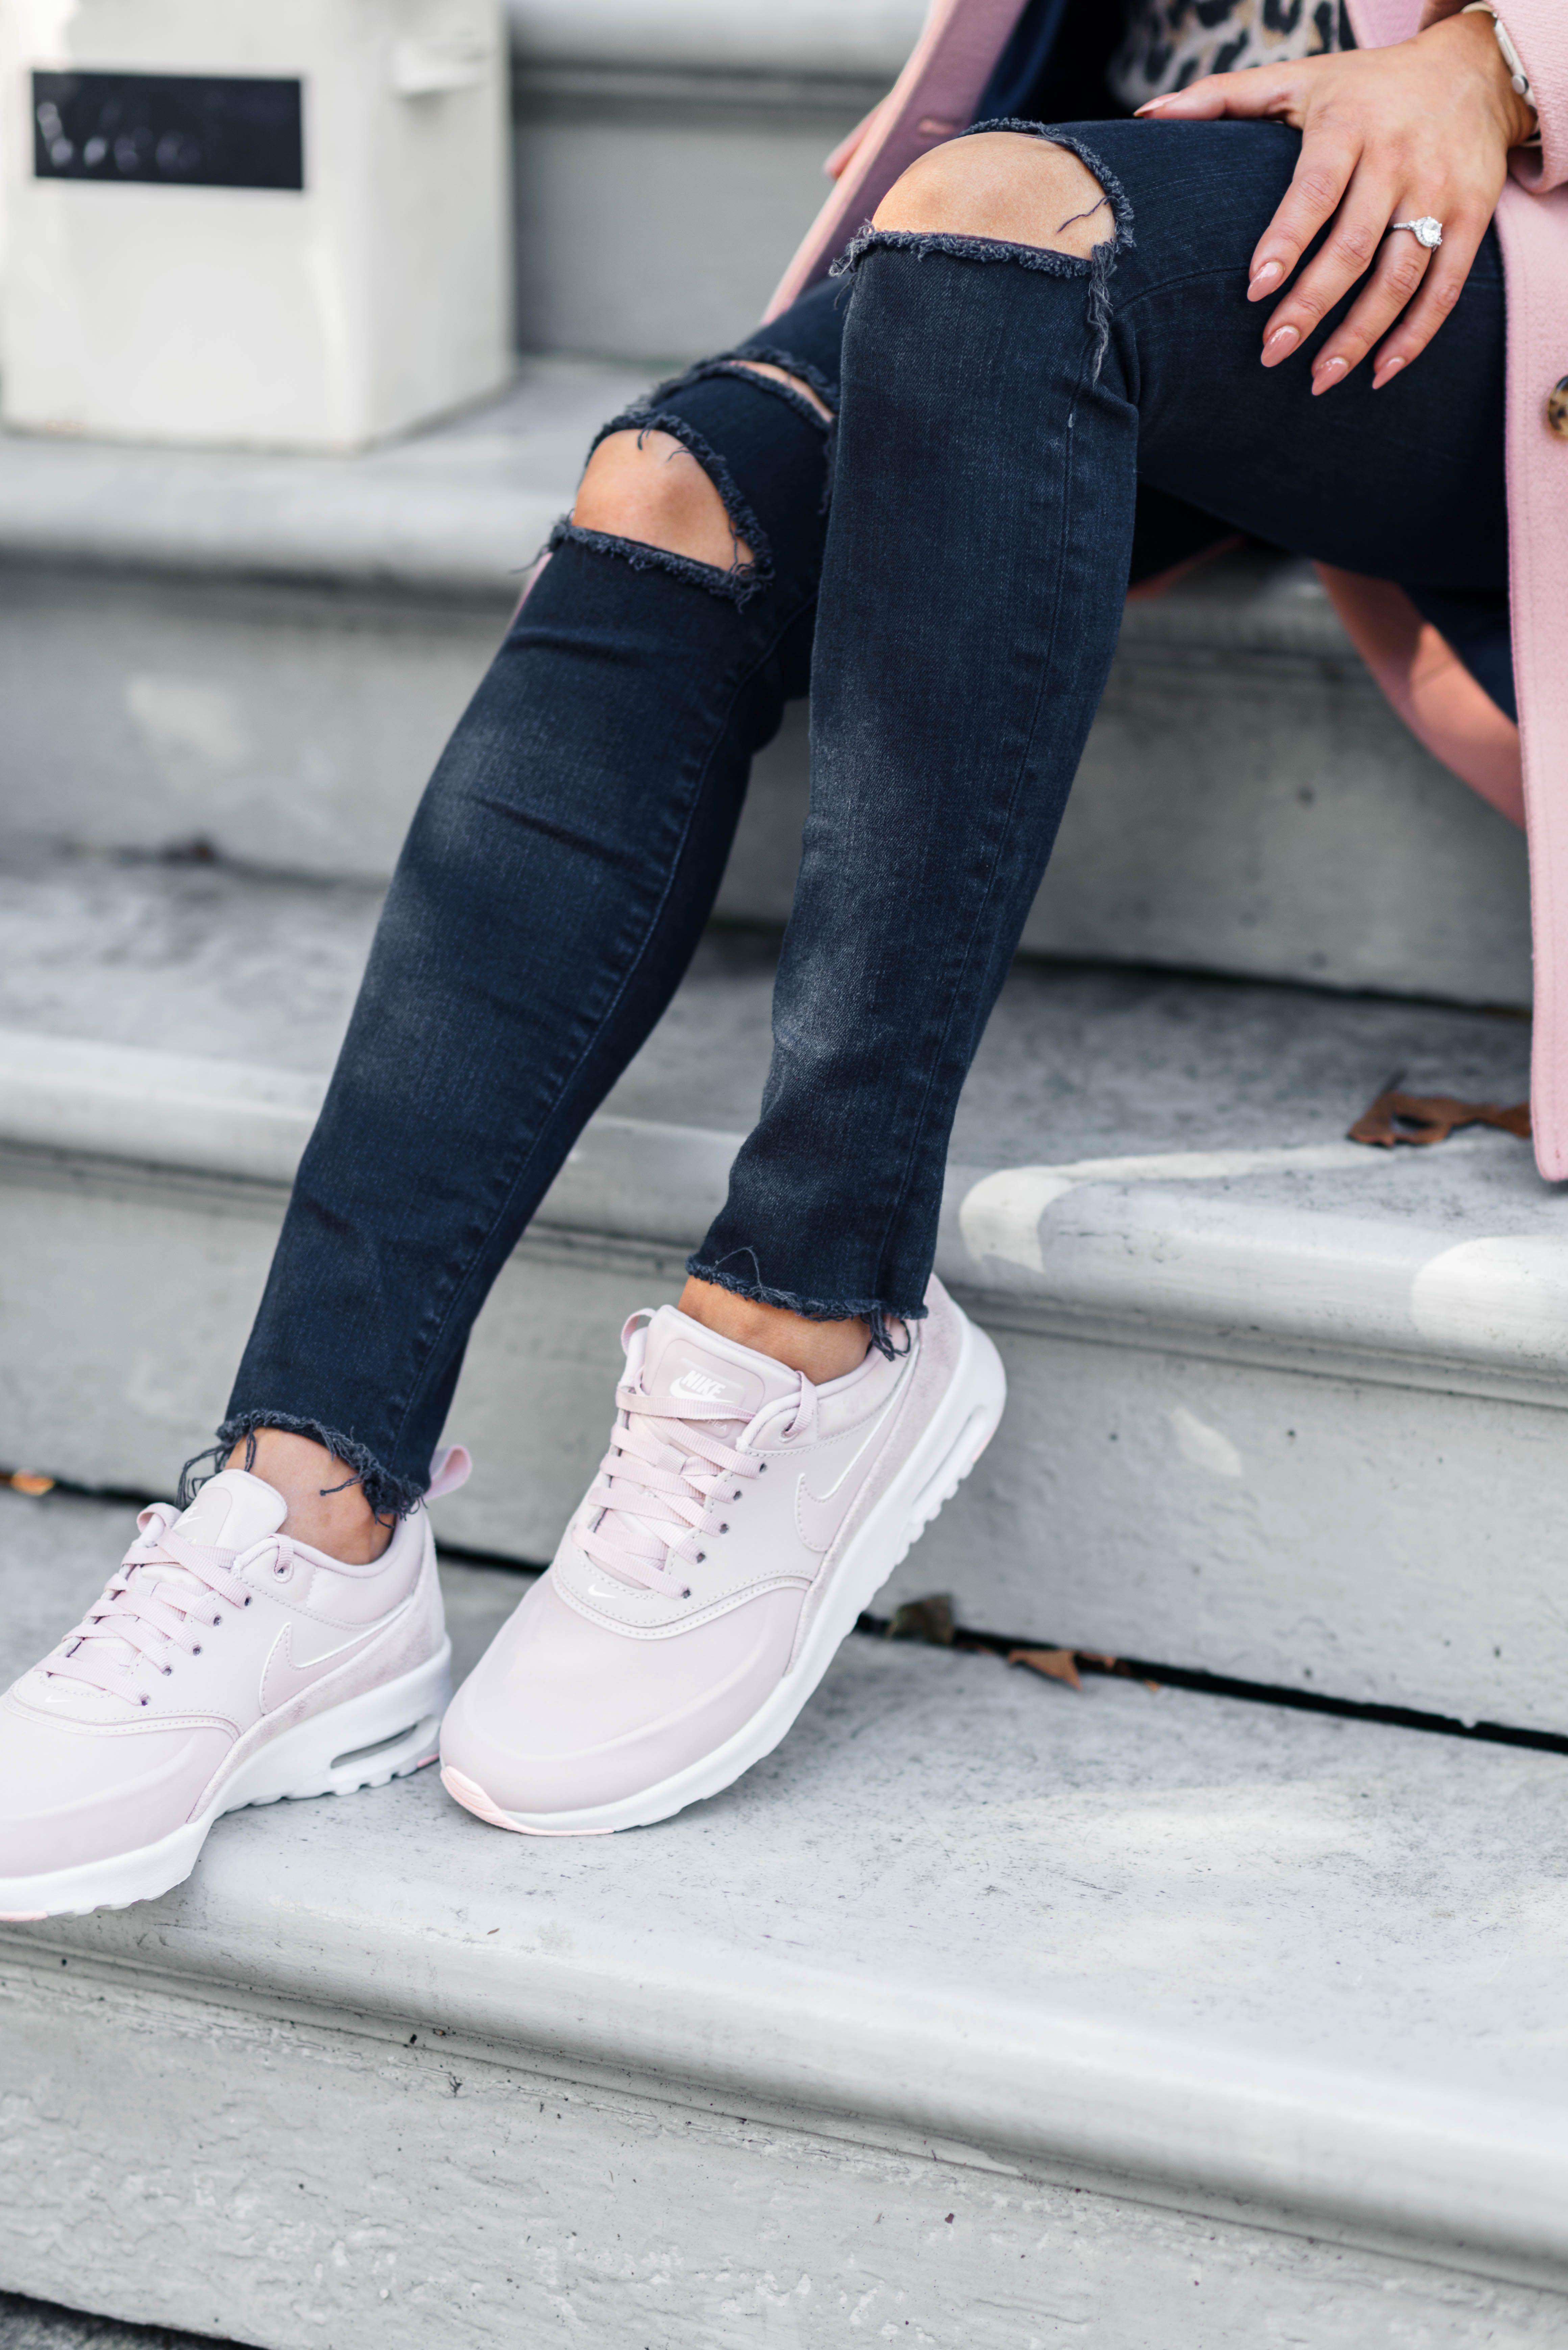 Chic sneakers, Tennis shoes outfit